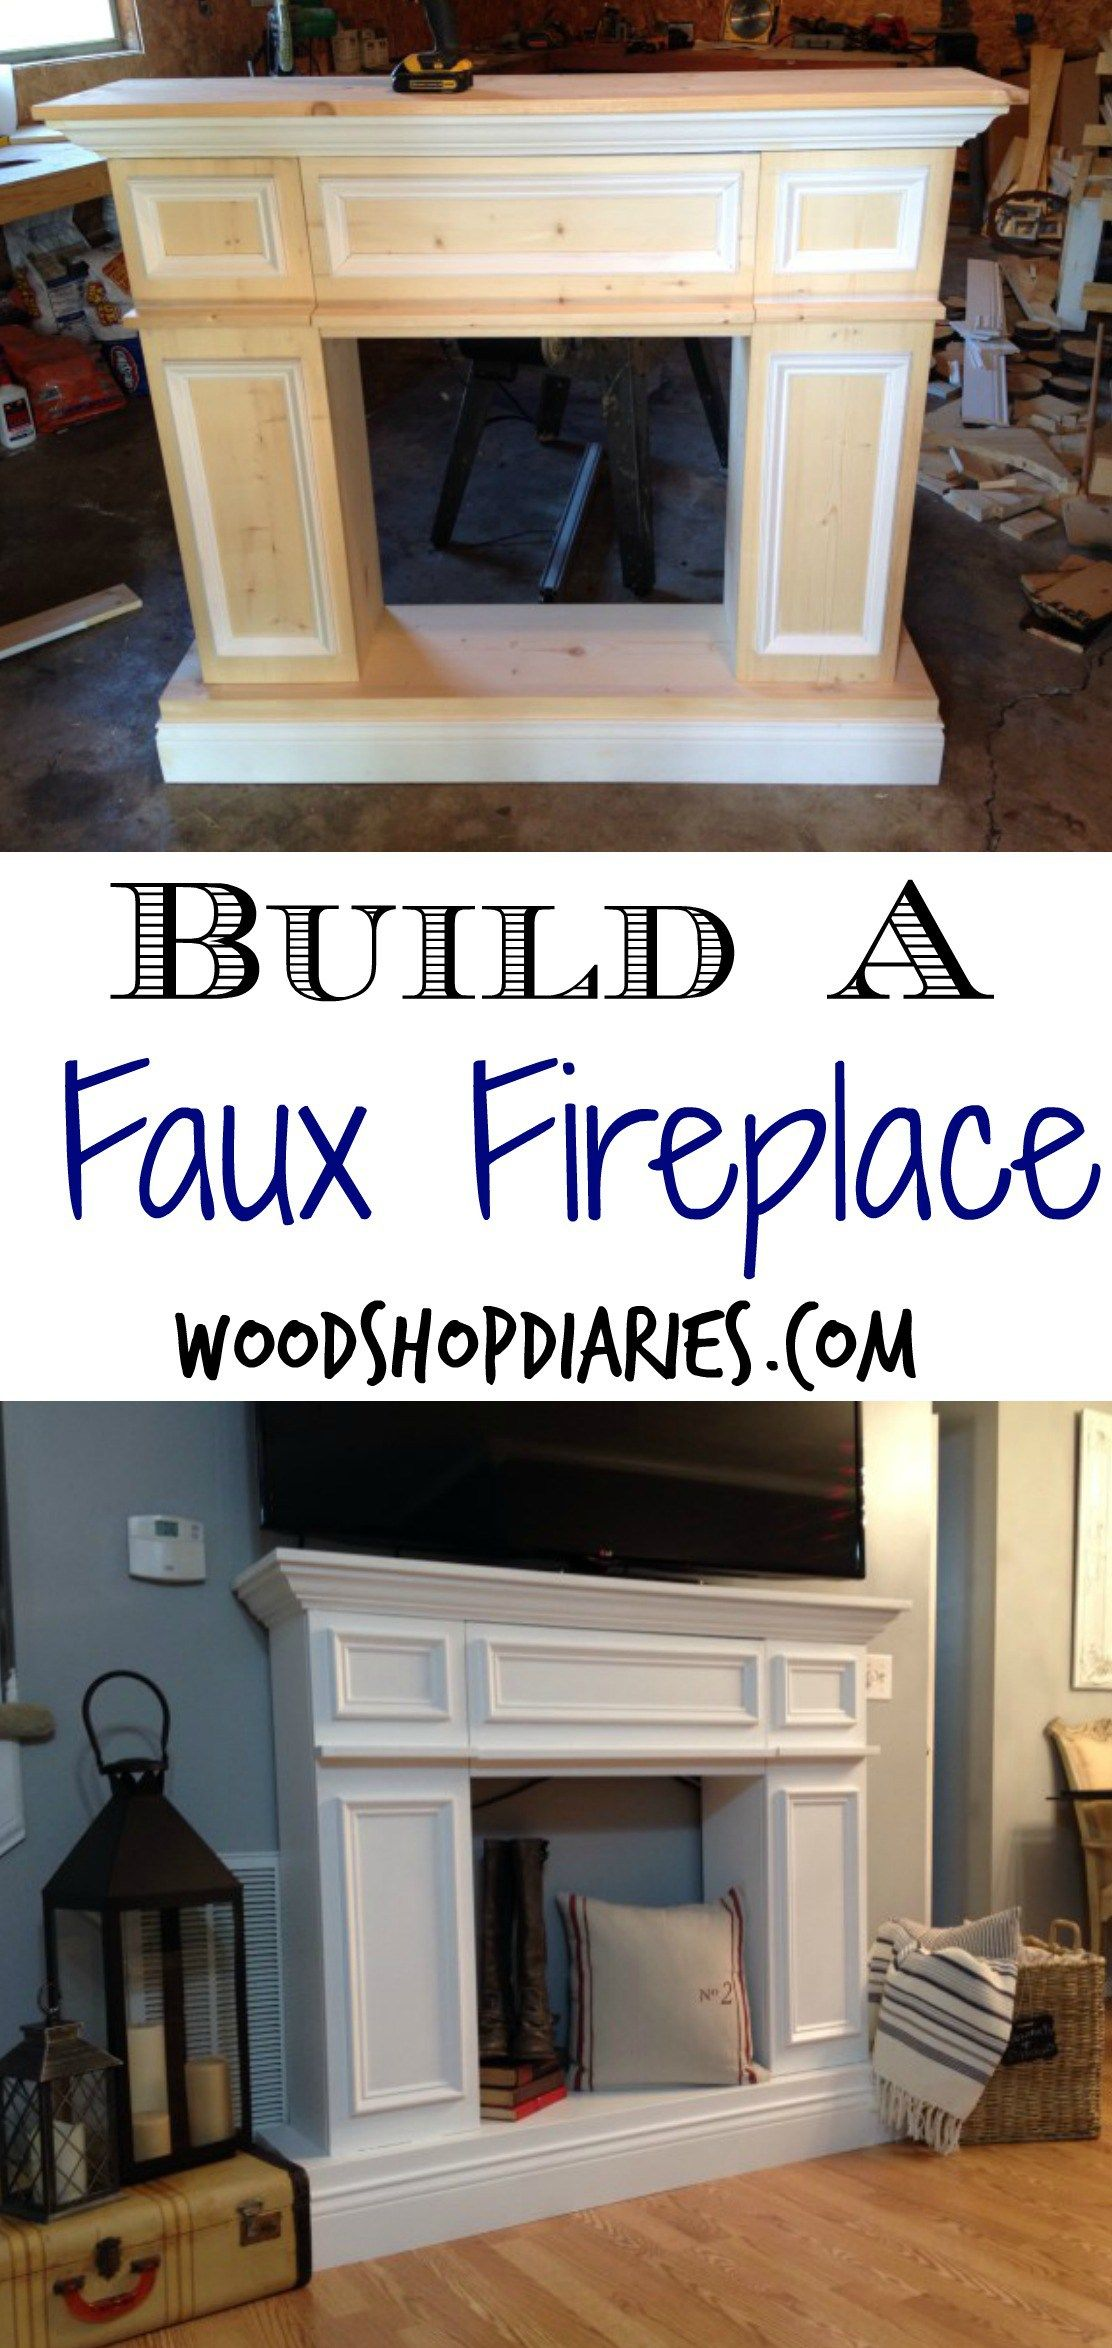 fake it til you make it the making of a faux fireplace fake